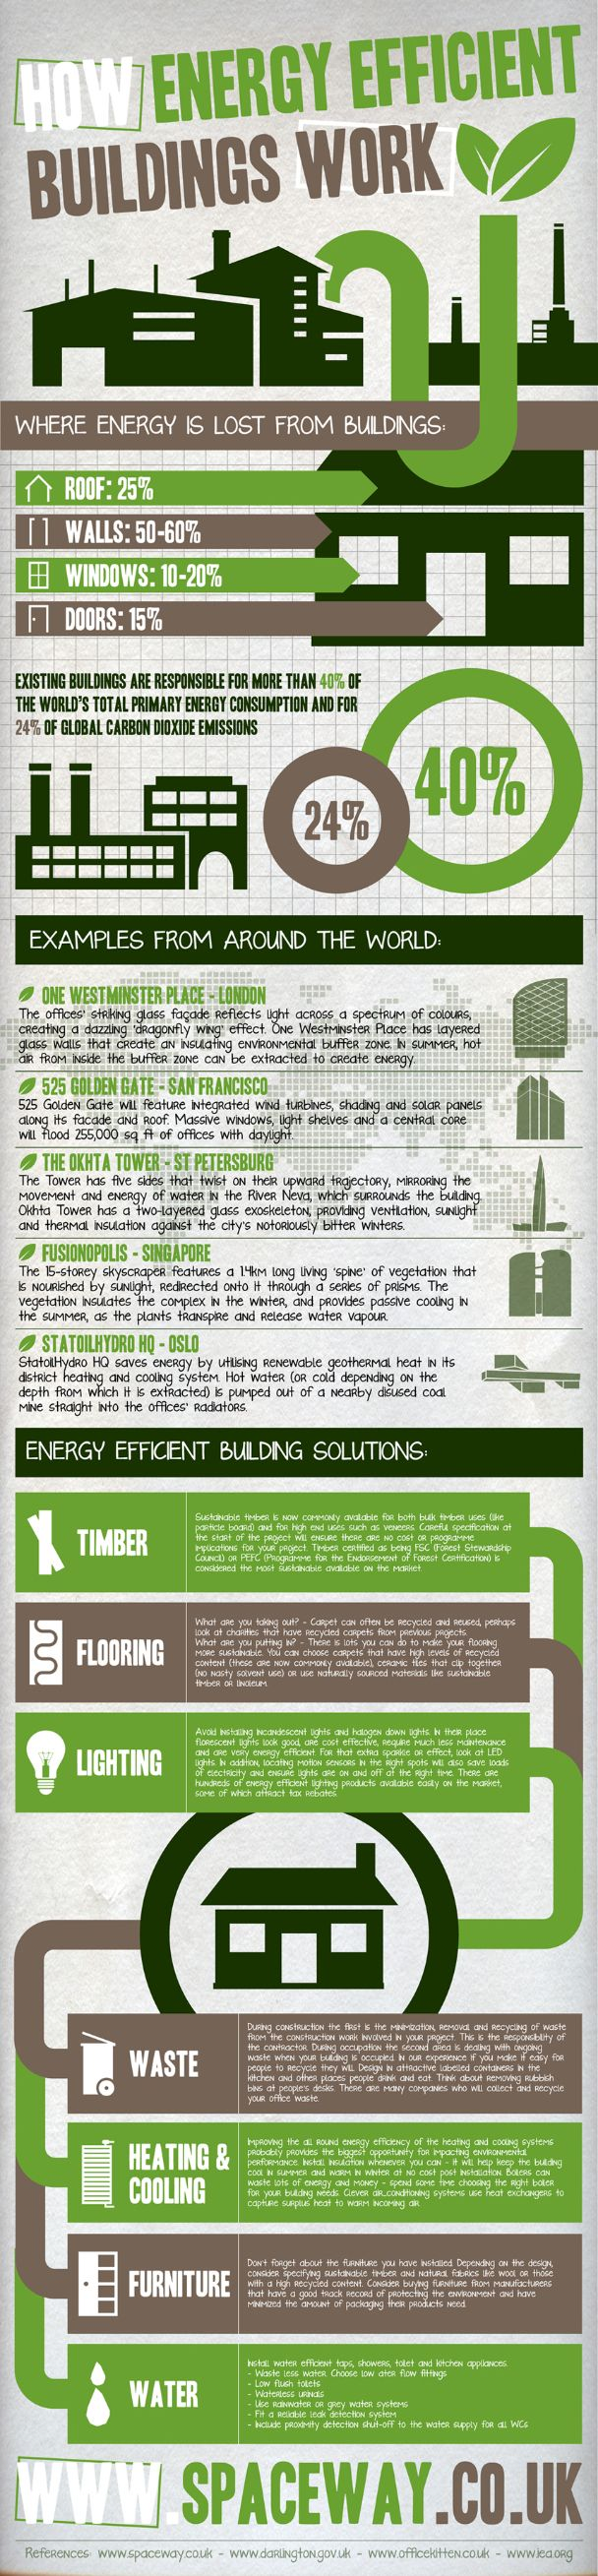 How energy efficient buildings work #infographic #eco-friendly